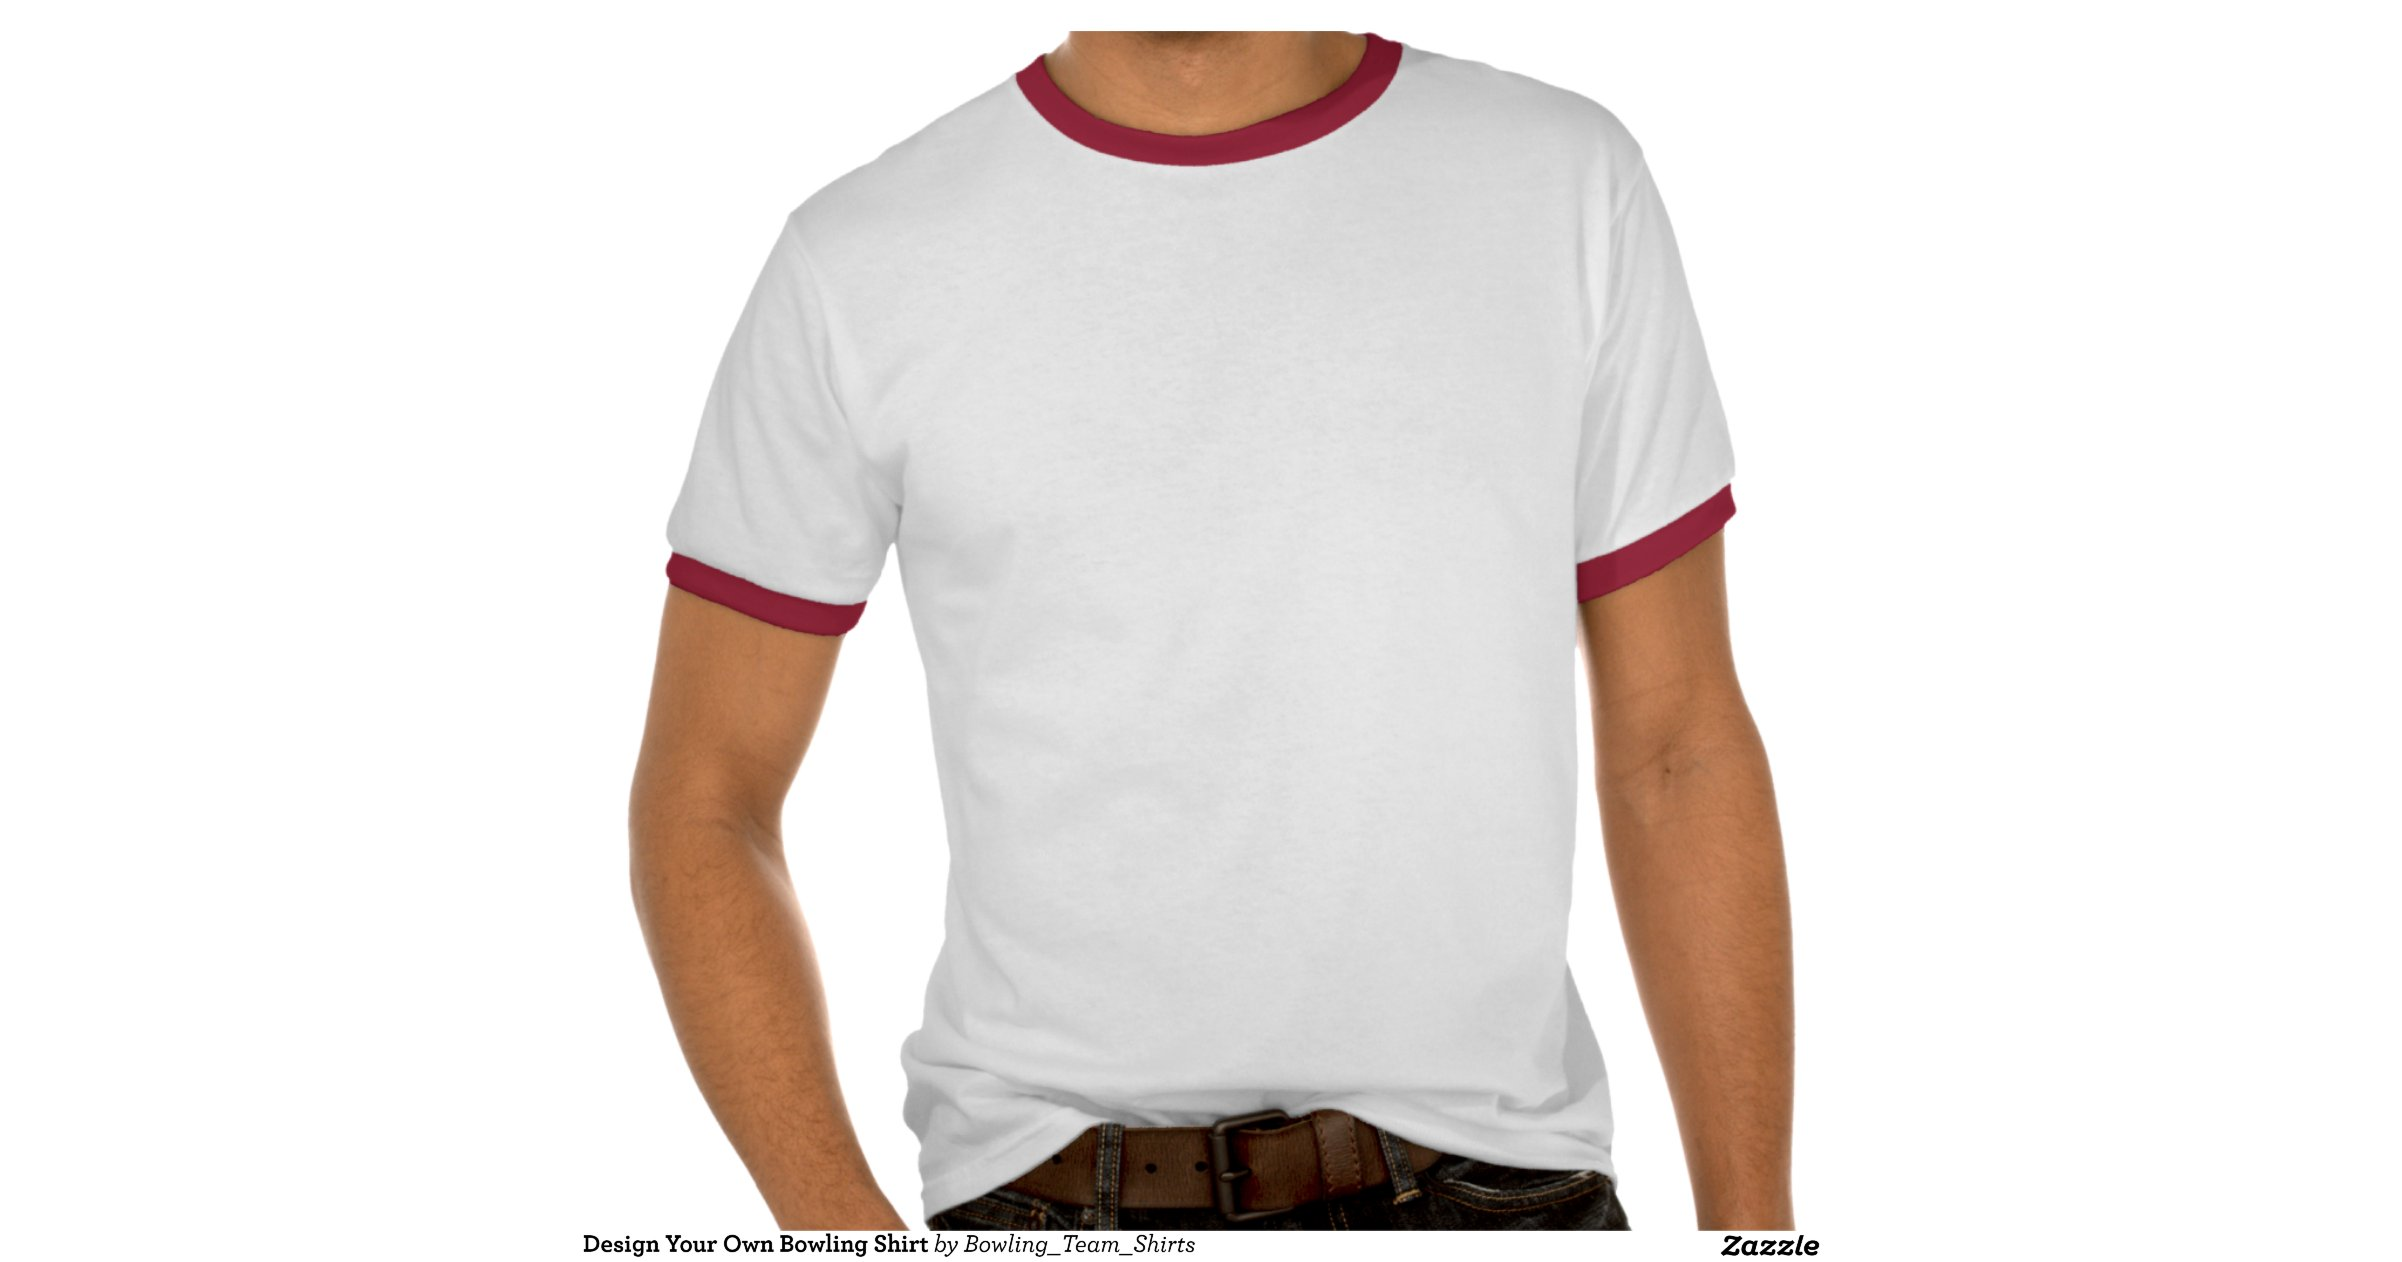 Design Your Own Bowling Shirt